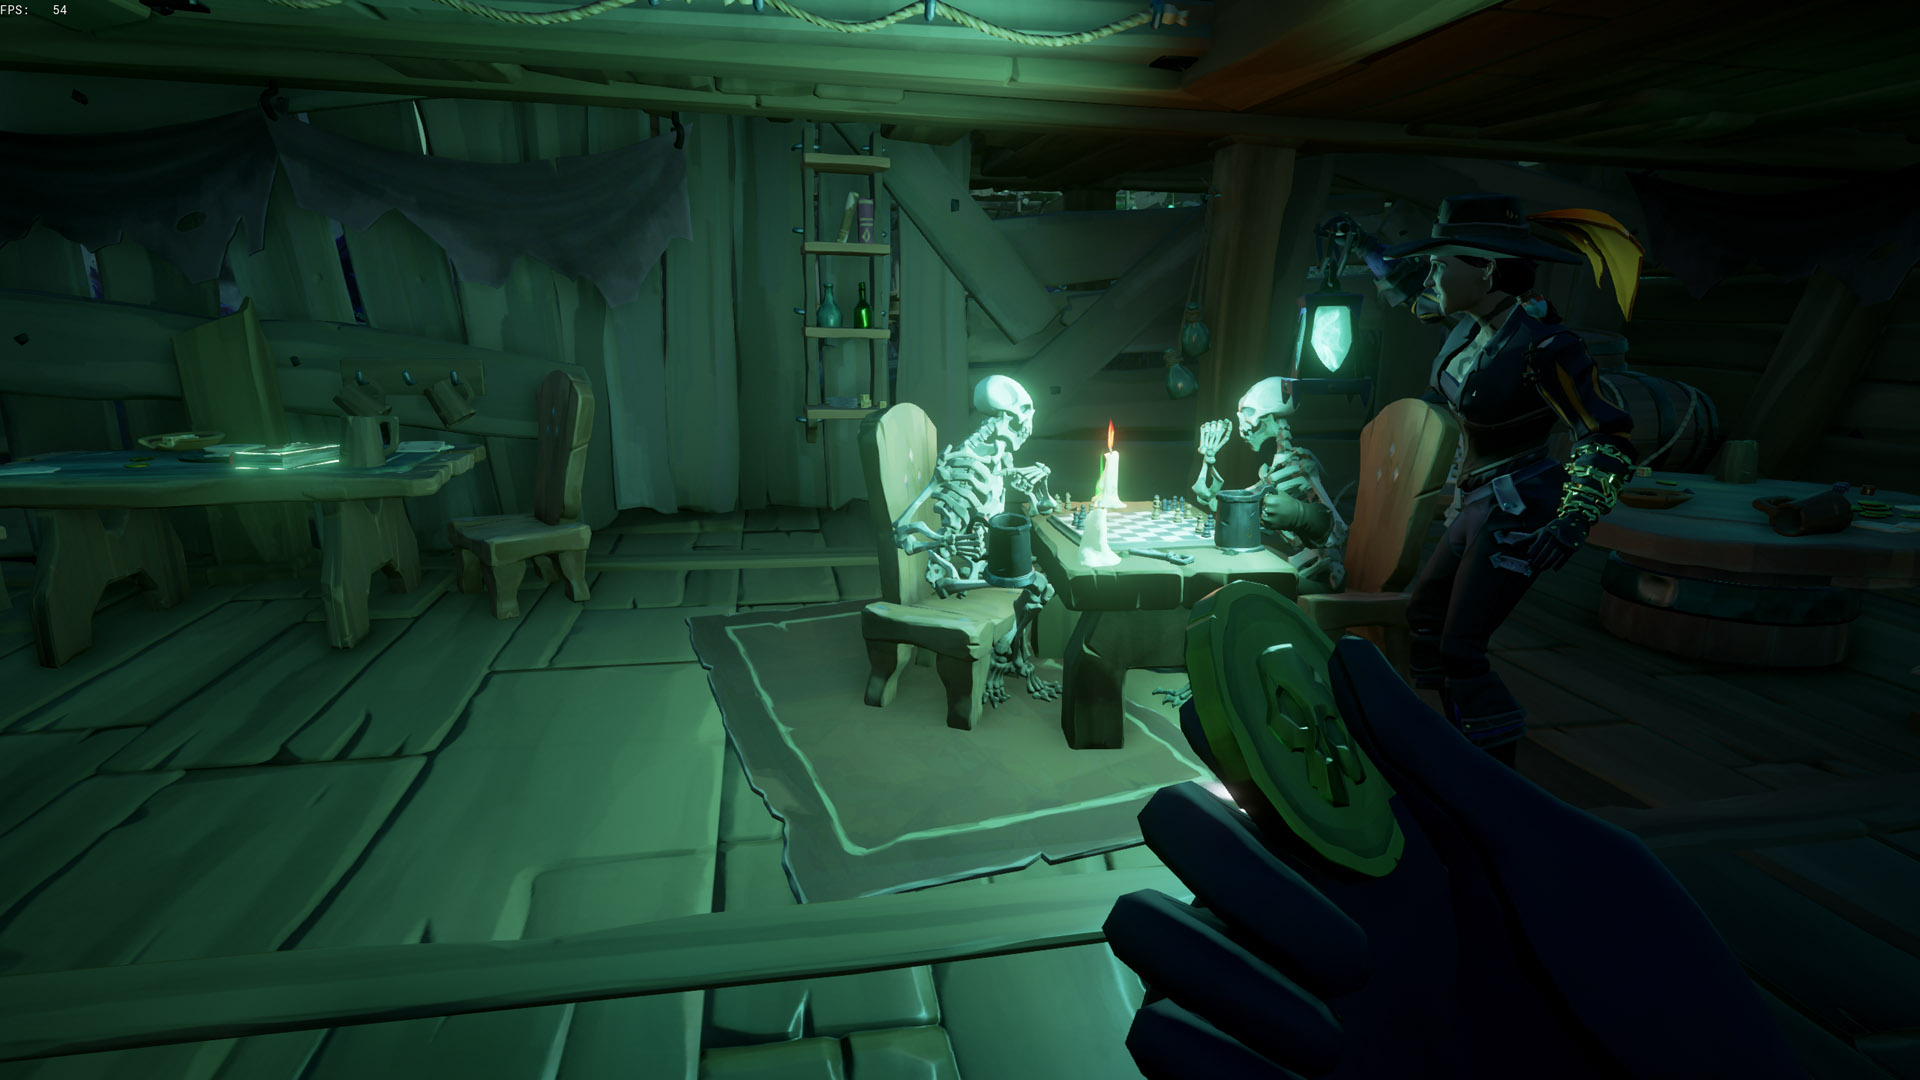 sea of thieves a pirates life a Powerful thirst skeletons playing chess